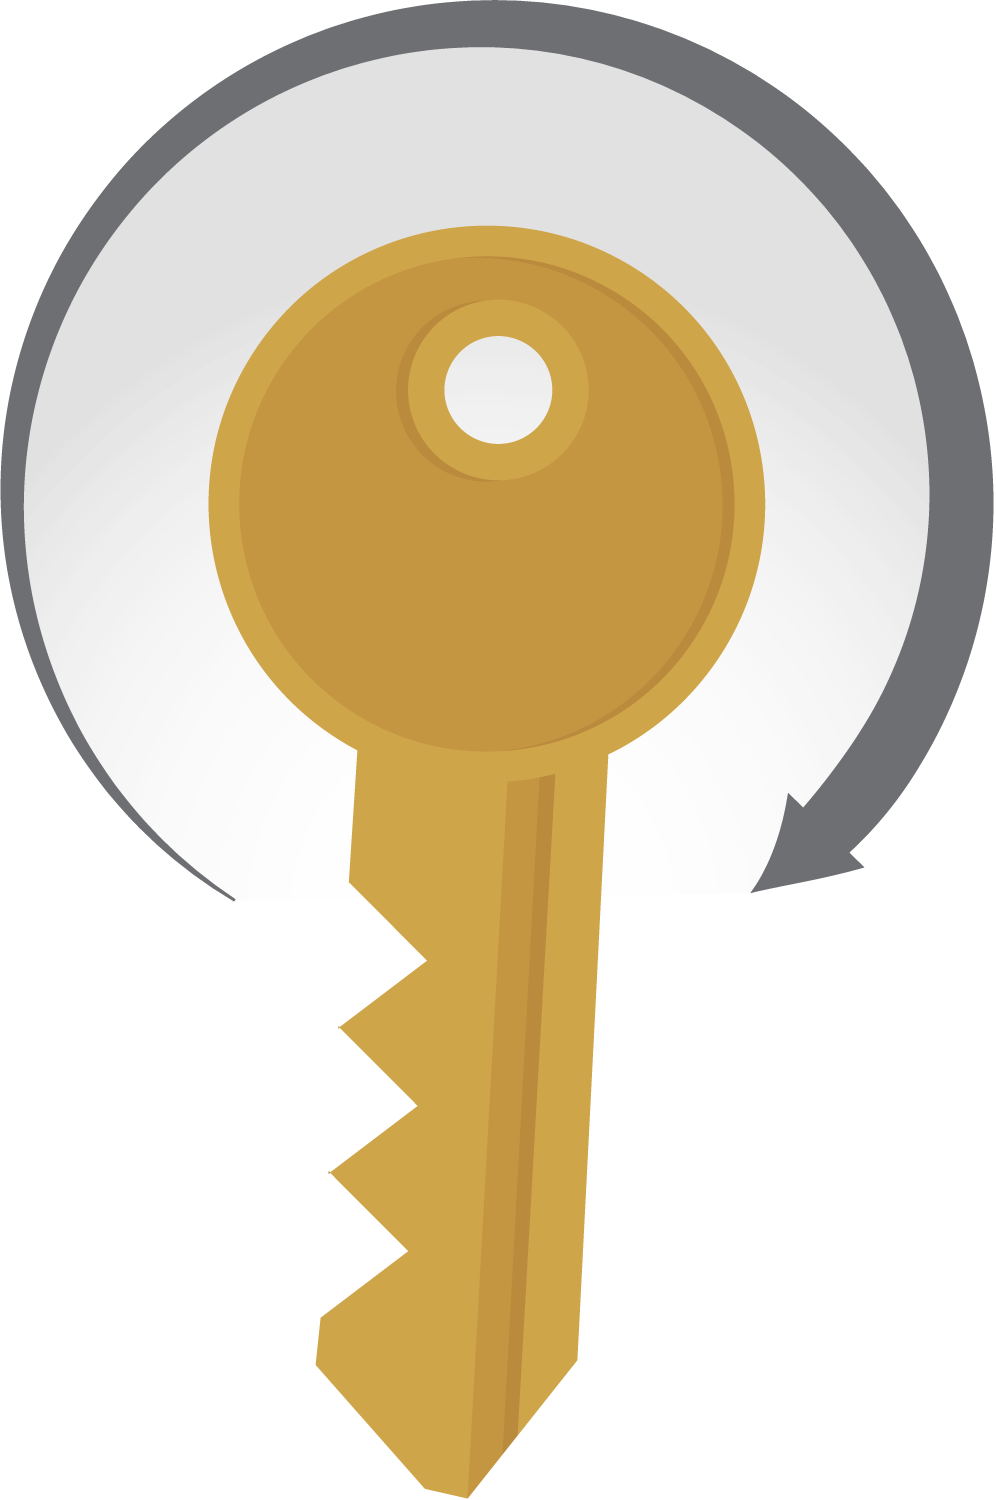 rental-property-management-services-icon-graphic.png